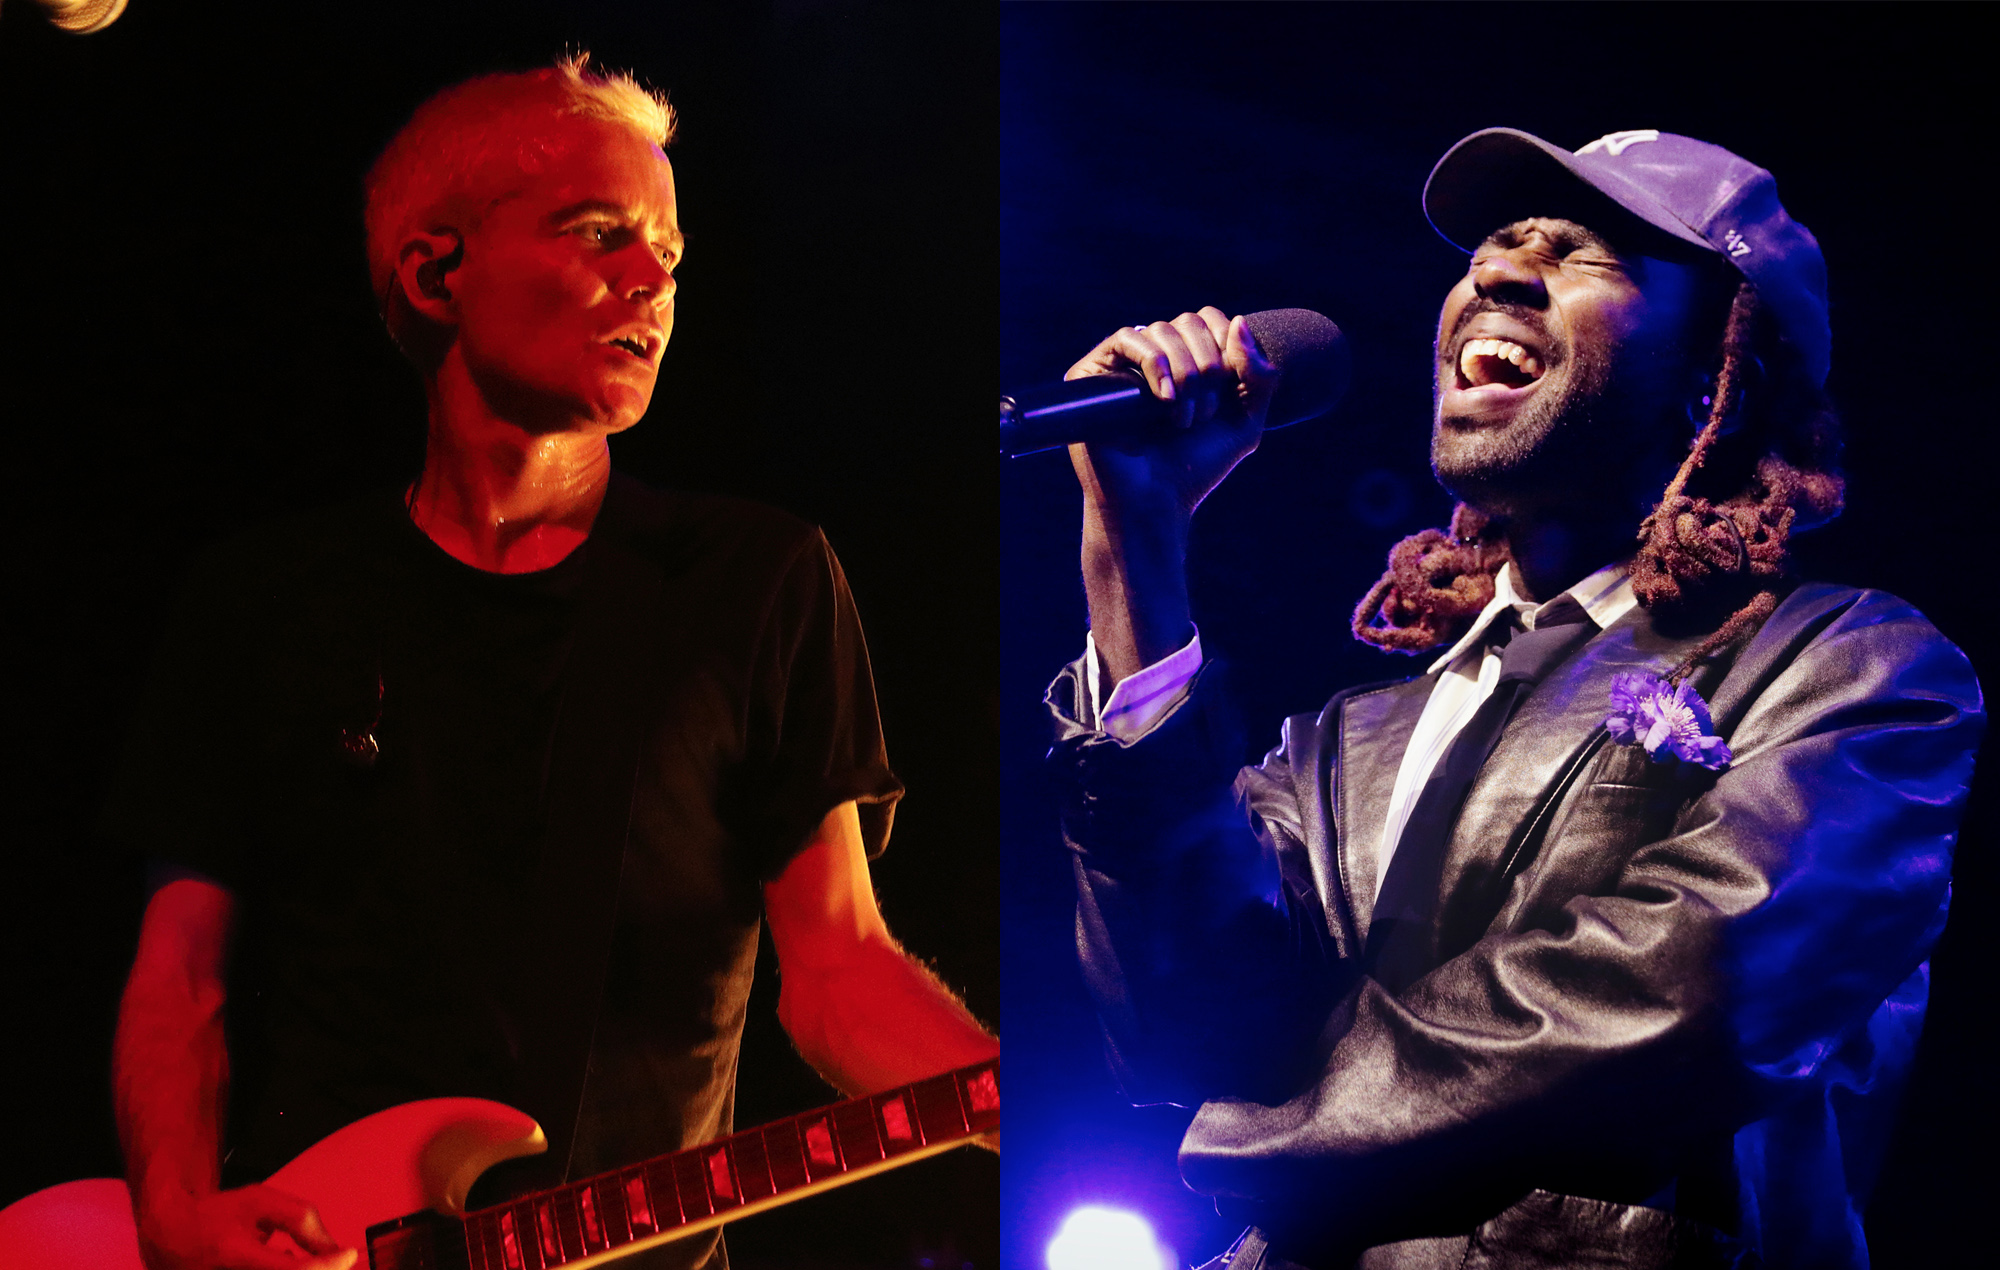 The Avalanches Are Teasing A 'Collab' With Blood Orange, Check Here Below